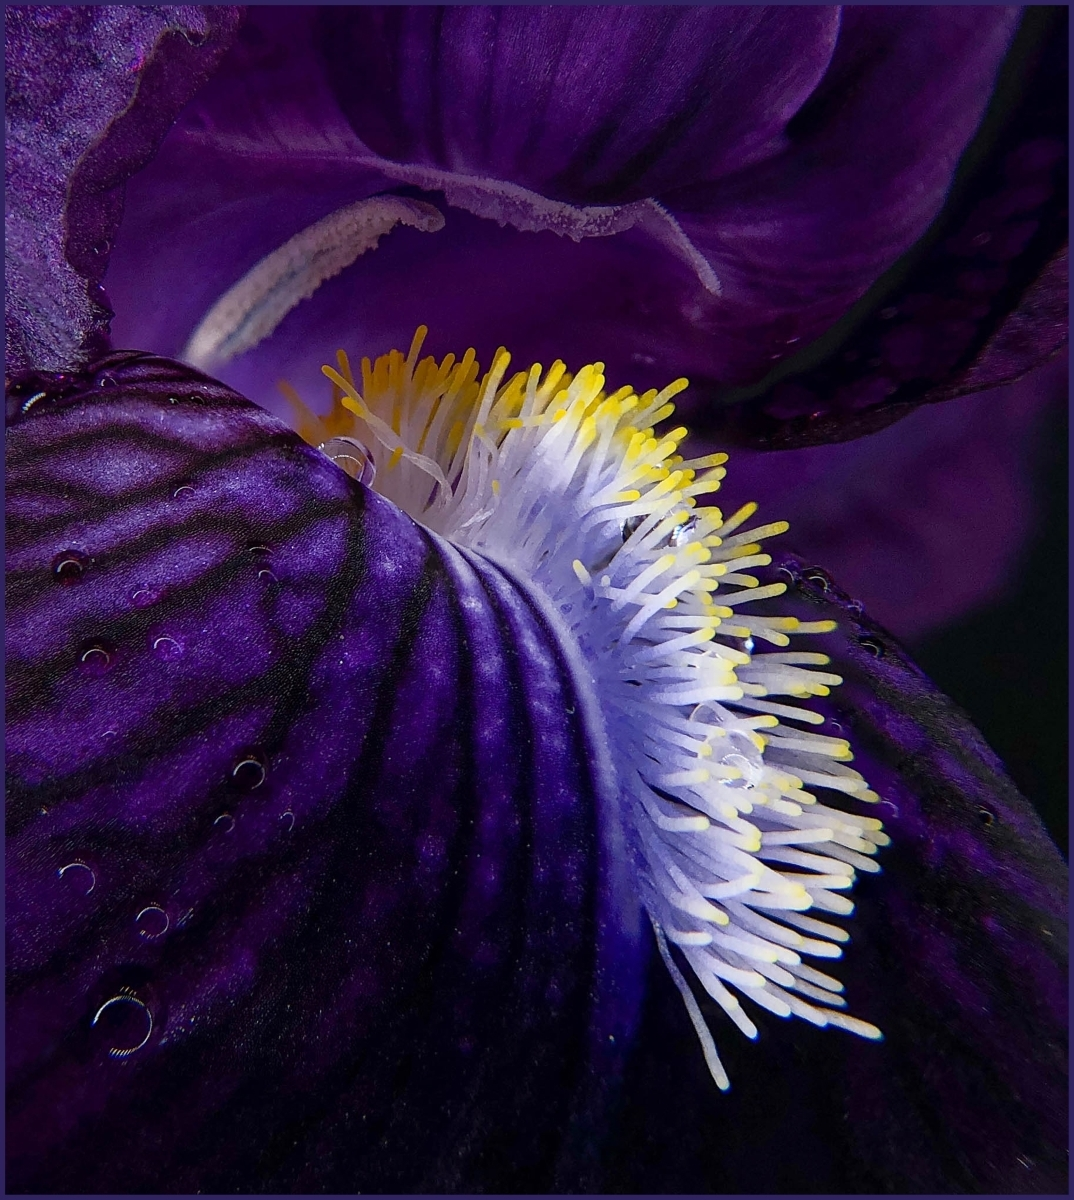 Iris-After-Rain-PI-Best-in-Show-by-David-Lingenfelter-BK